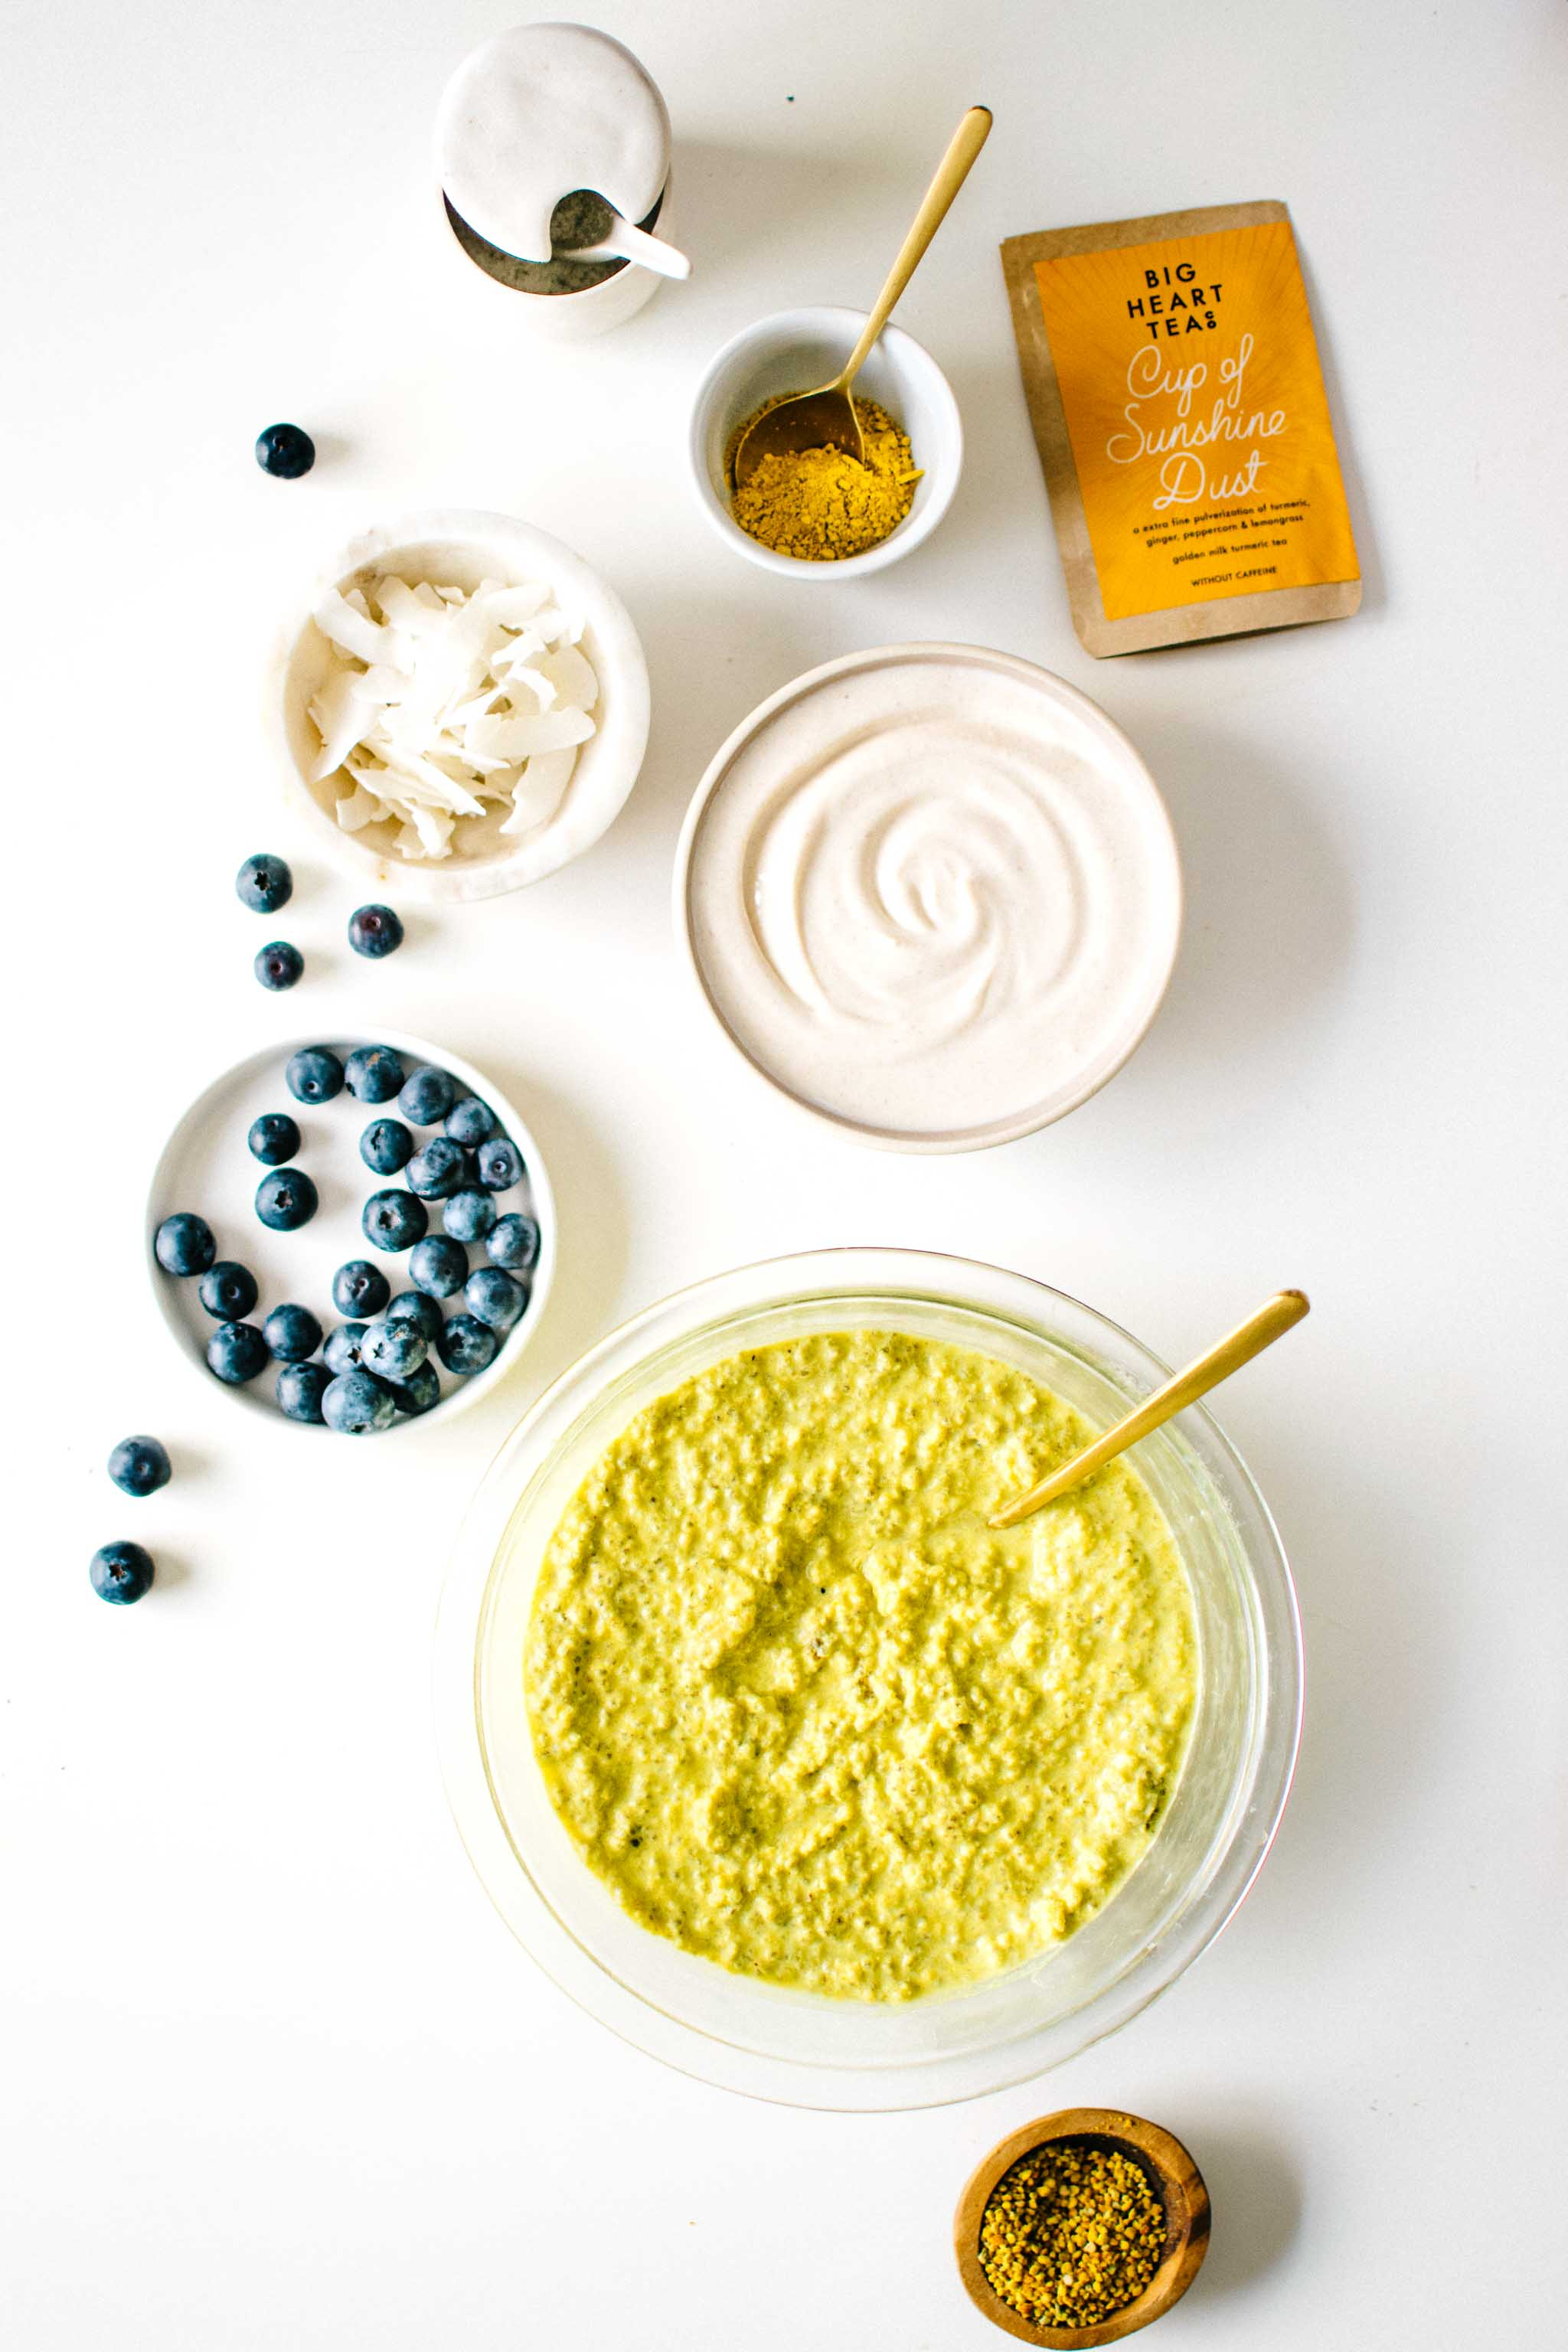 Golden Milk Chia Pudding from The Wellness Project